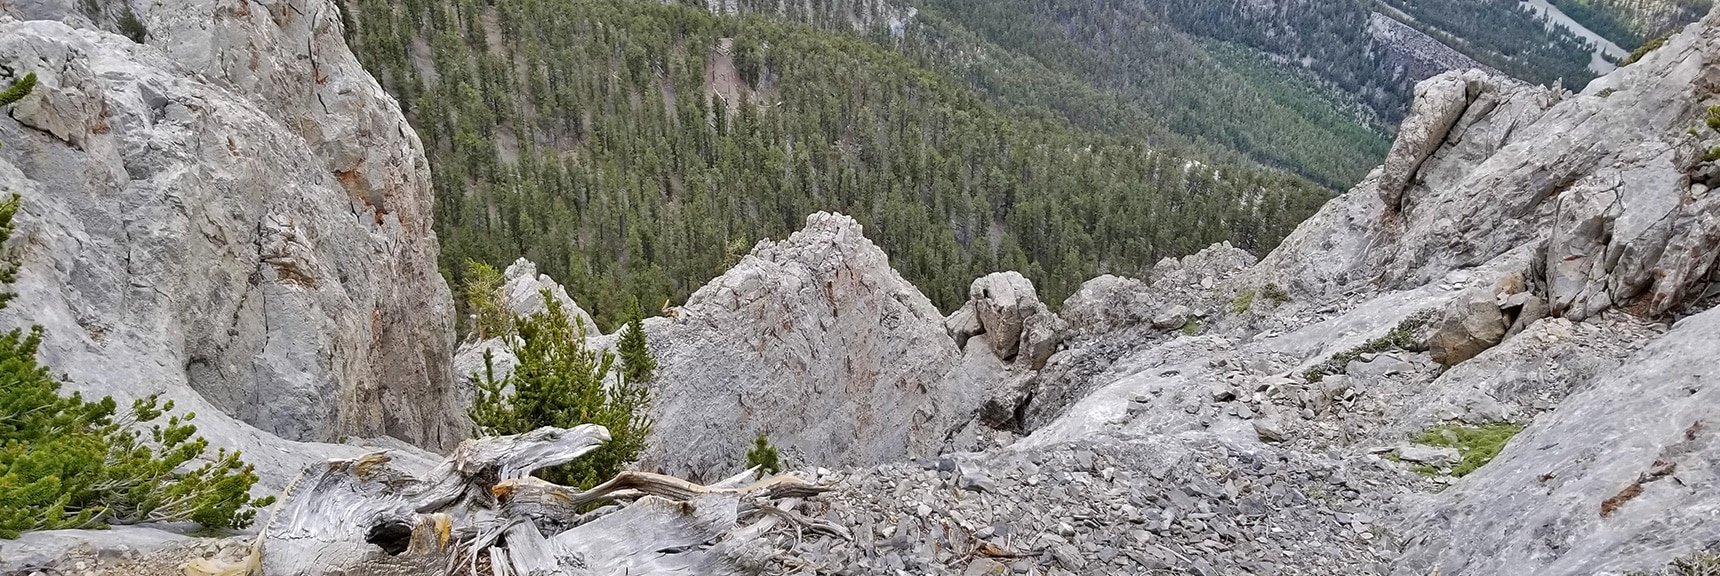 Looking Over the Ledge Down Mummy's NW Cliffs | Mummy Mountain NW Cliffs | Mt Charleston Wilderness | Spring Mountains, Nevada